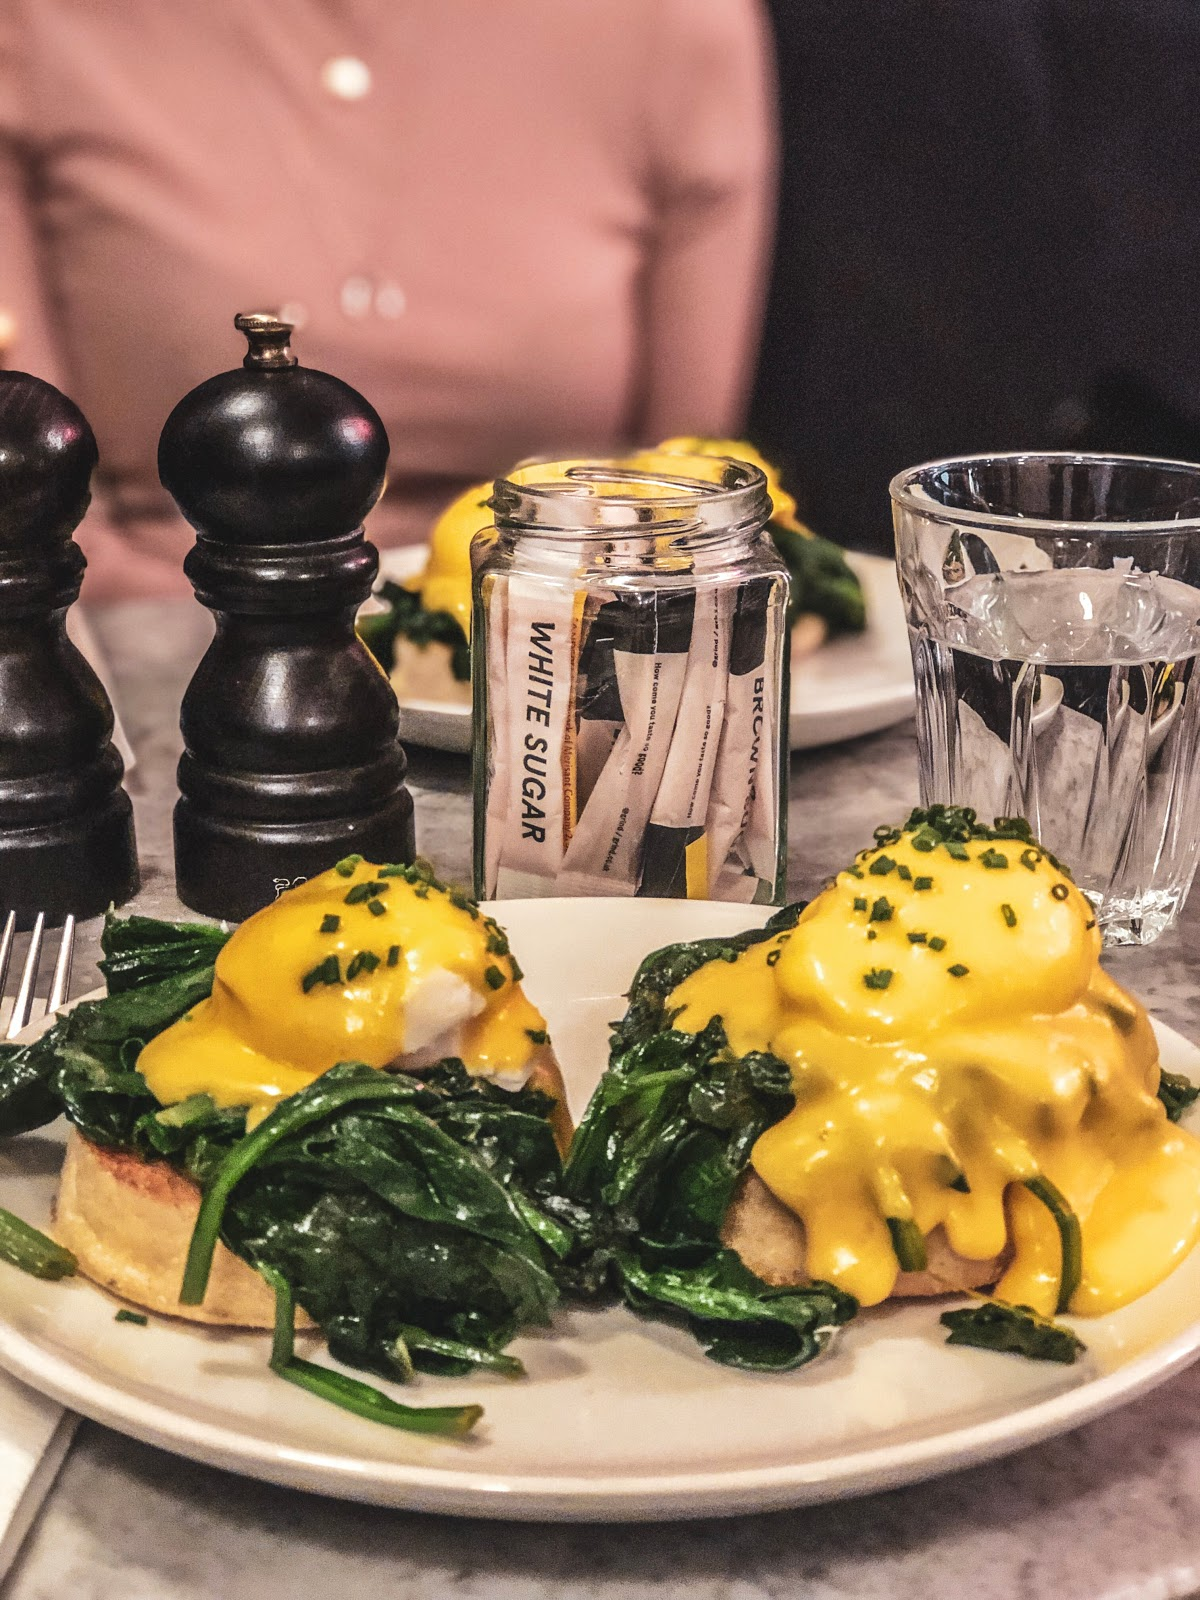 A plate of poached eggs in hollandaise sauce with a side of spinach